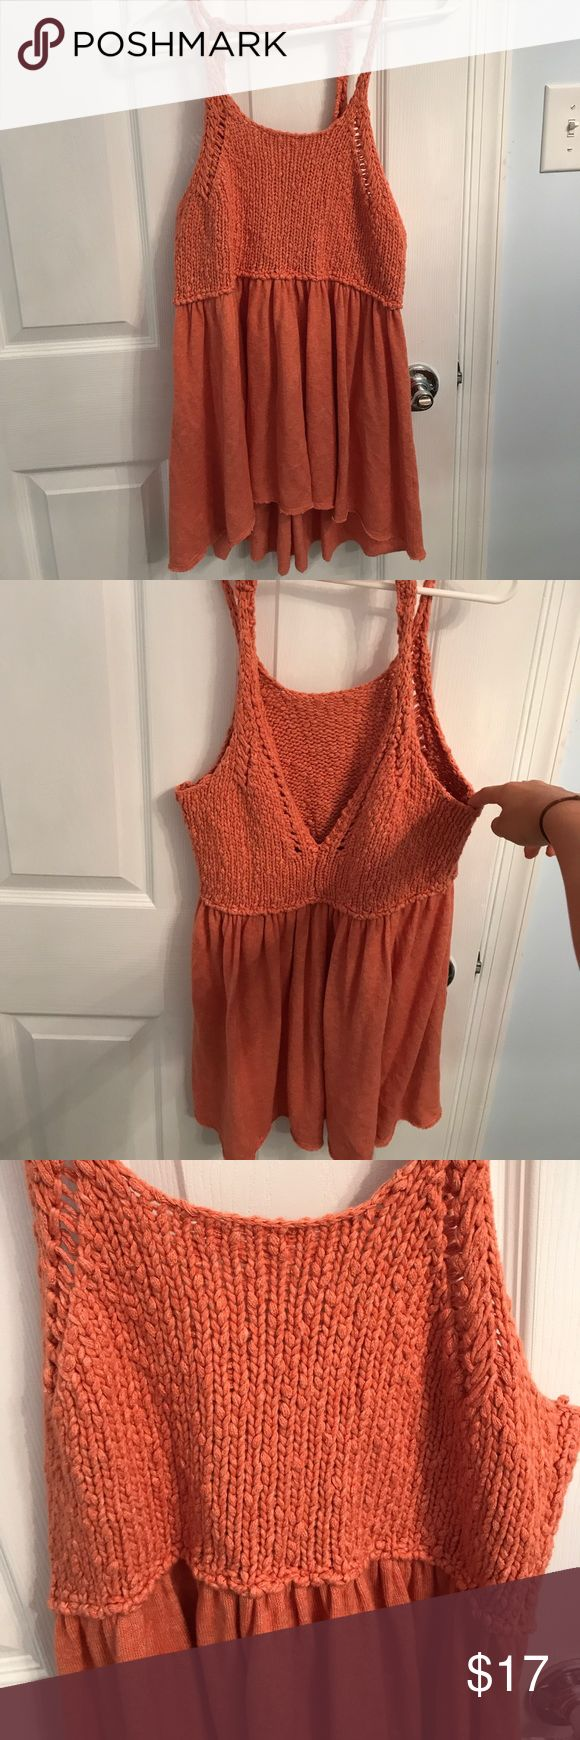 Free People shirt Coral colored, long shirt with thin straps, made of sweater-like material; round neck in front; V in back; size XS, but cut big Free People Tops